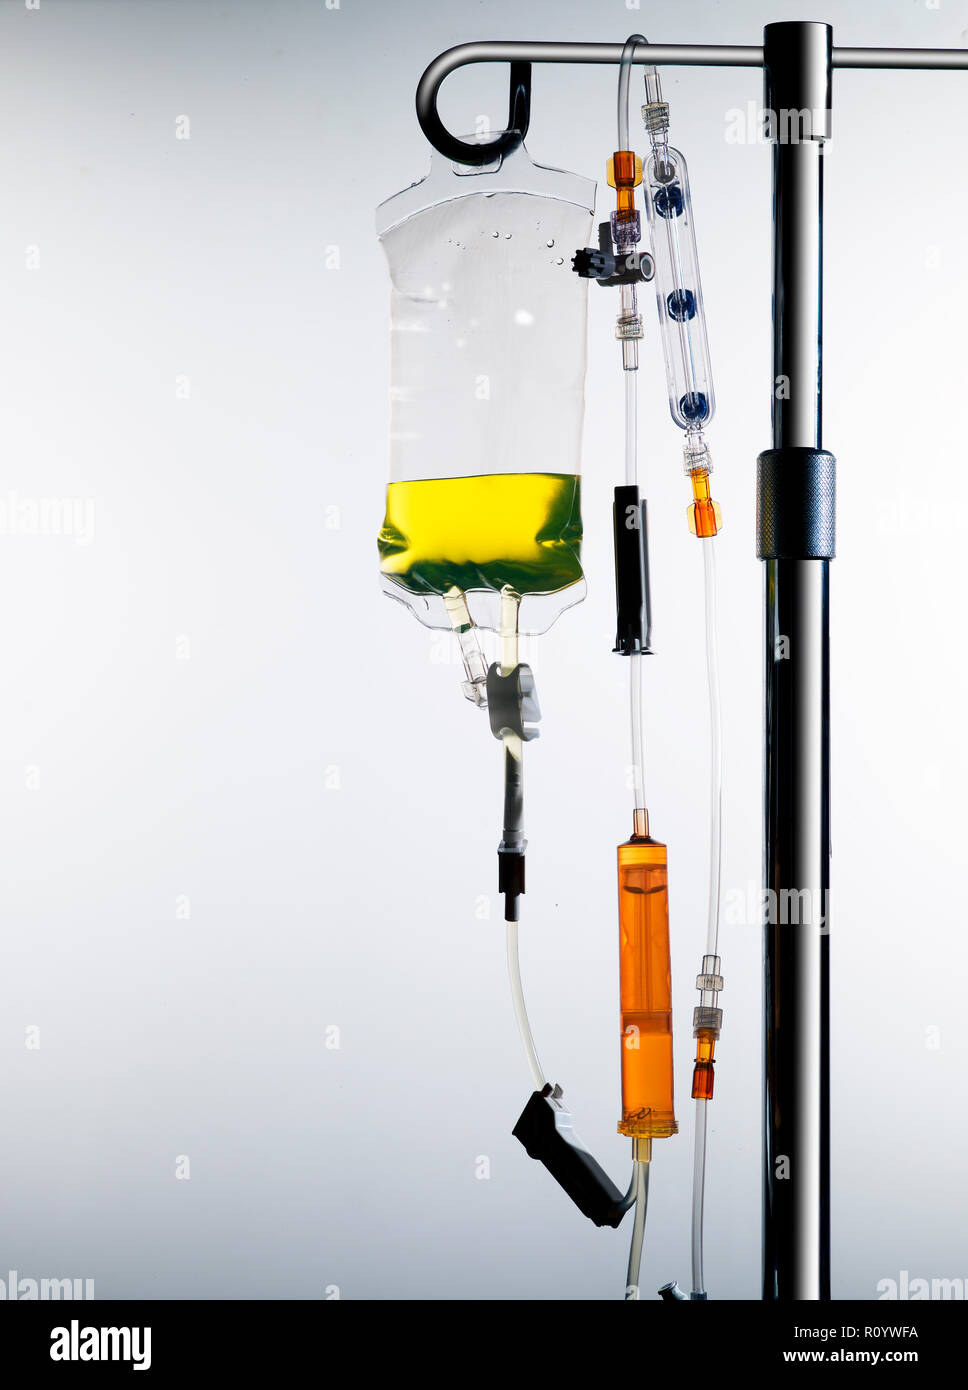 Drip stand with intravenous drug bag and intravenous lines, medical equipment and healthcare treatment Stock Photo